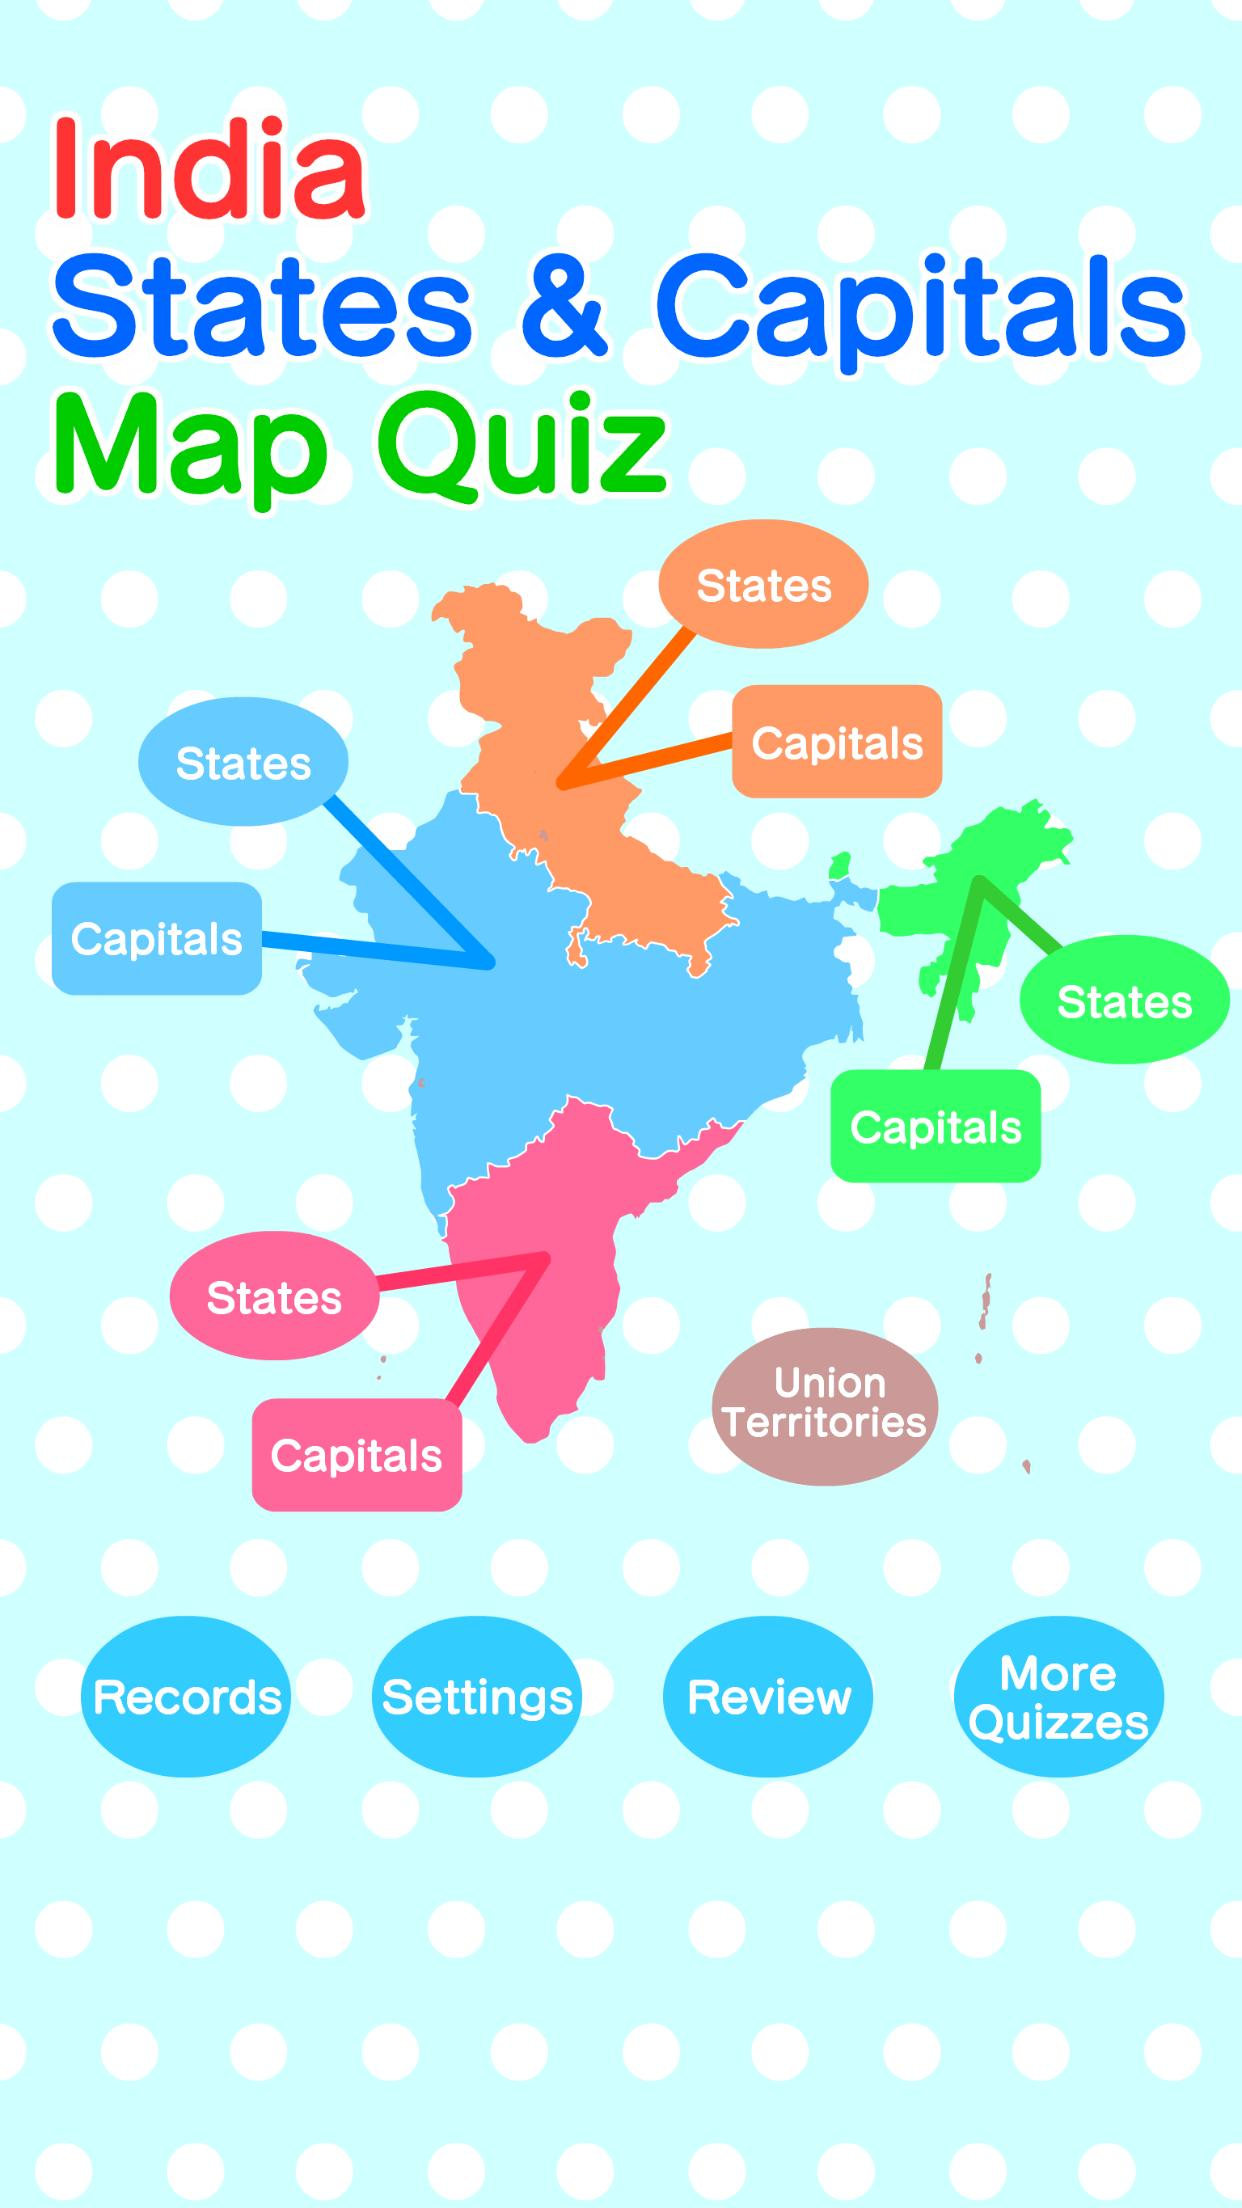 India States & Capitals Map Quiz - Geography Game for Android - APK on